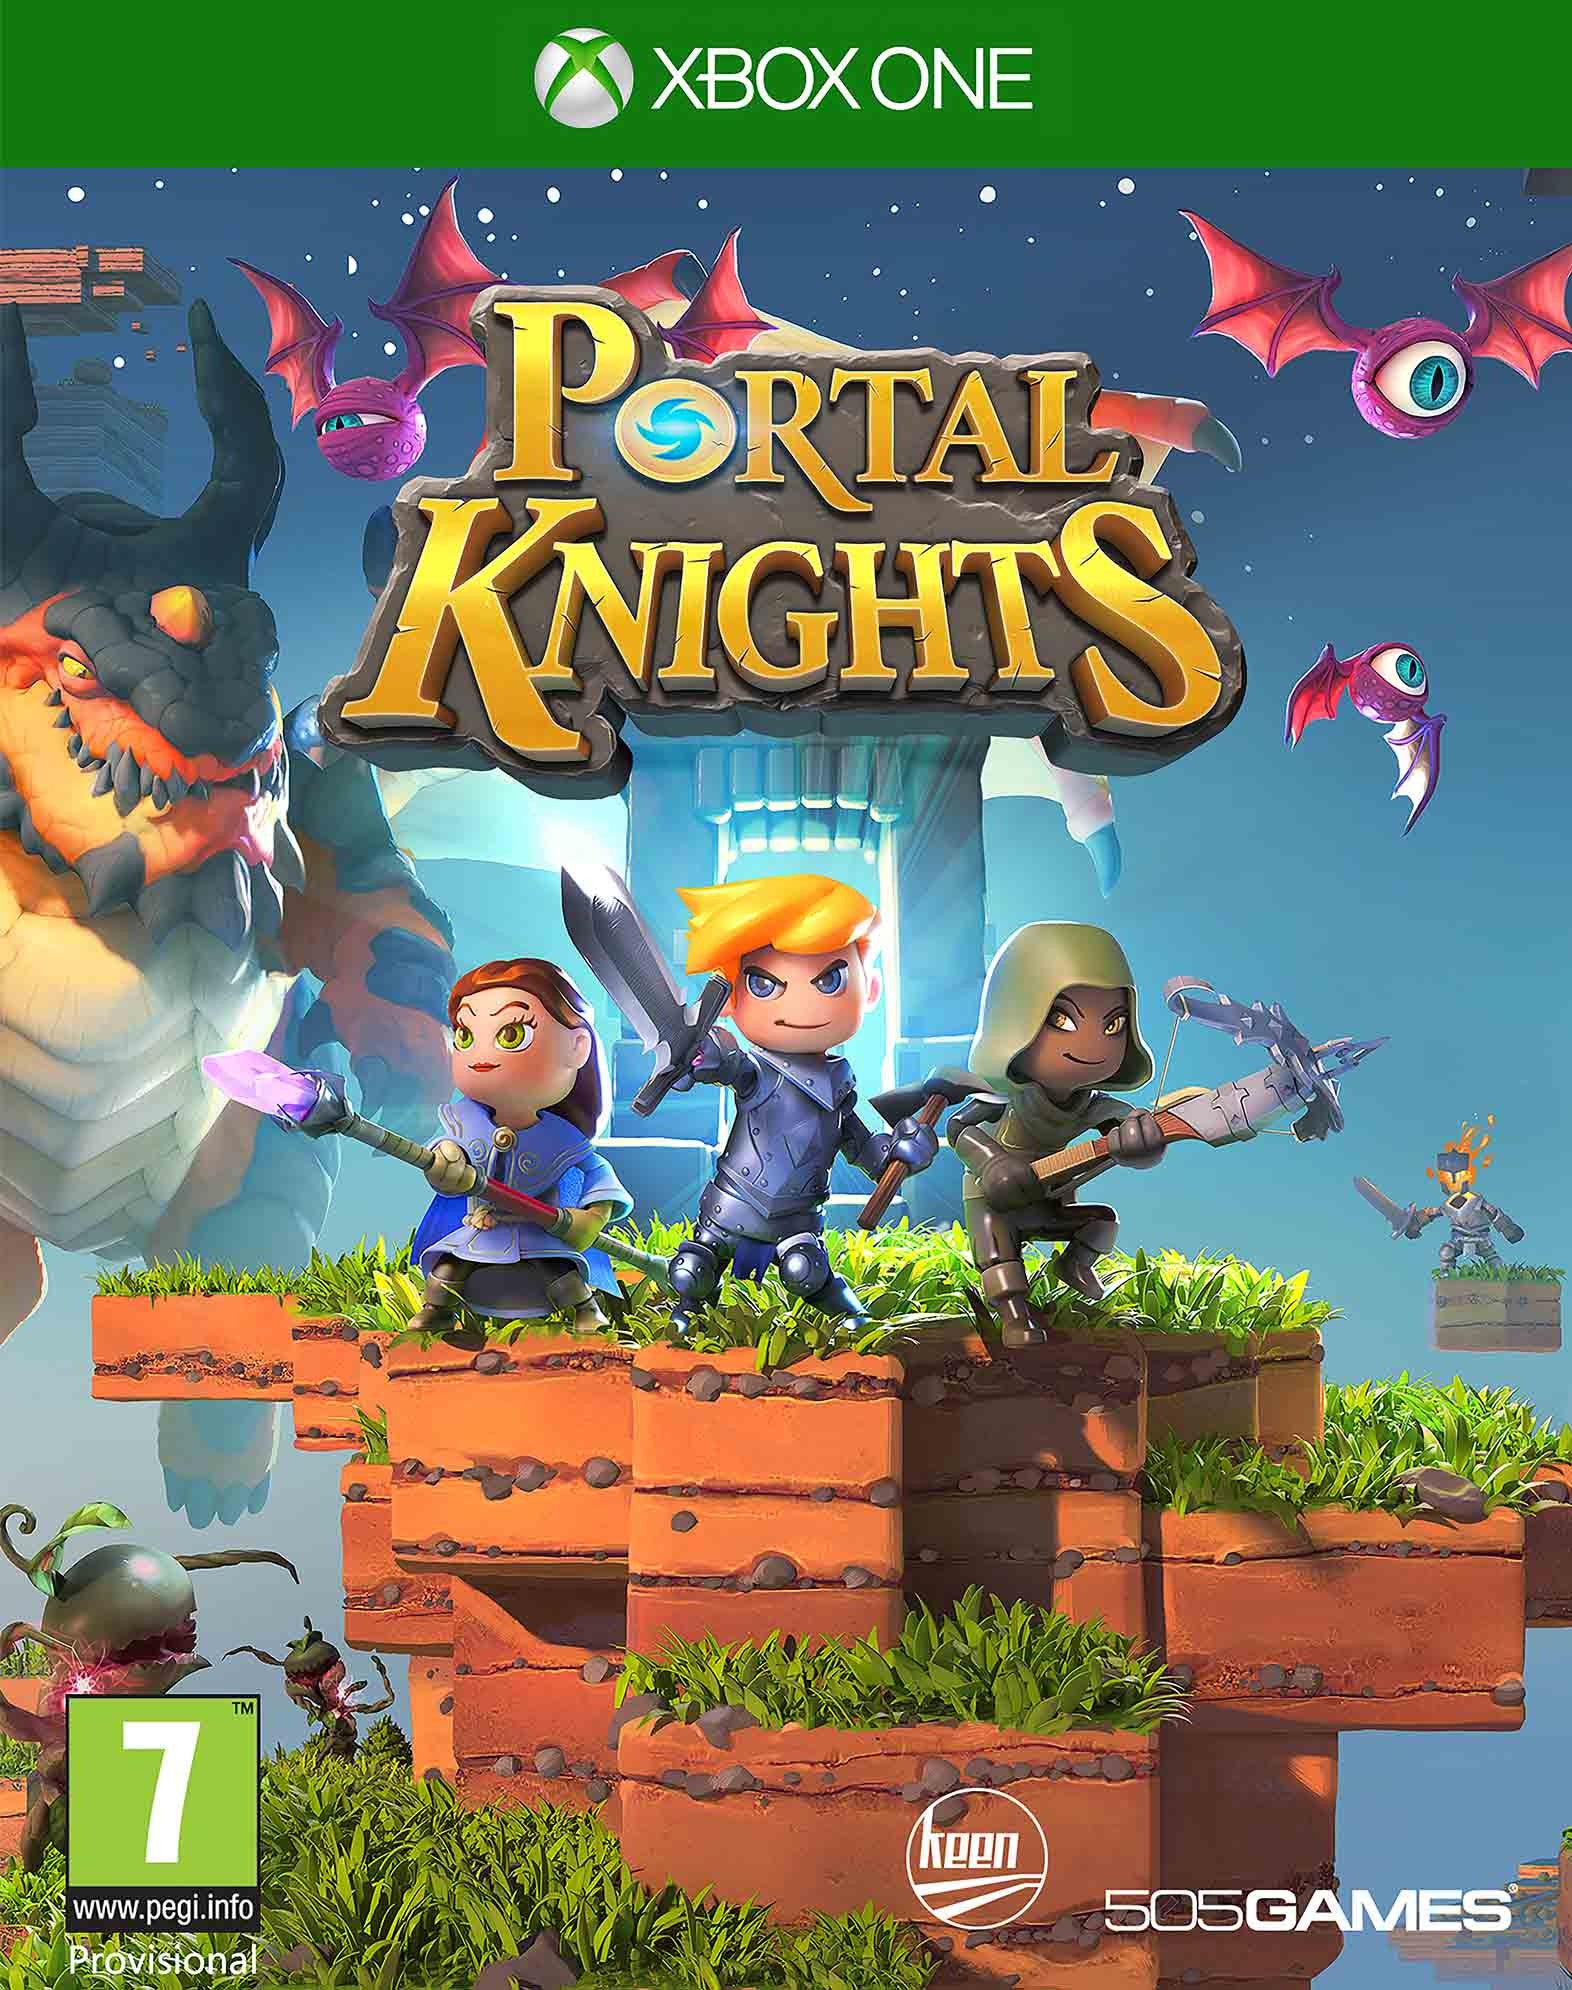 Portal Knights - Xbox One - Video Games by 505 Games The Chelsea Gamer